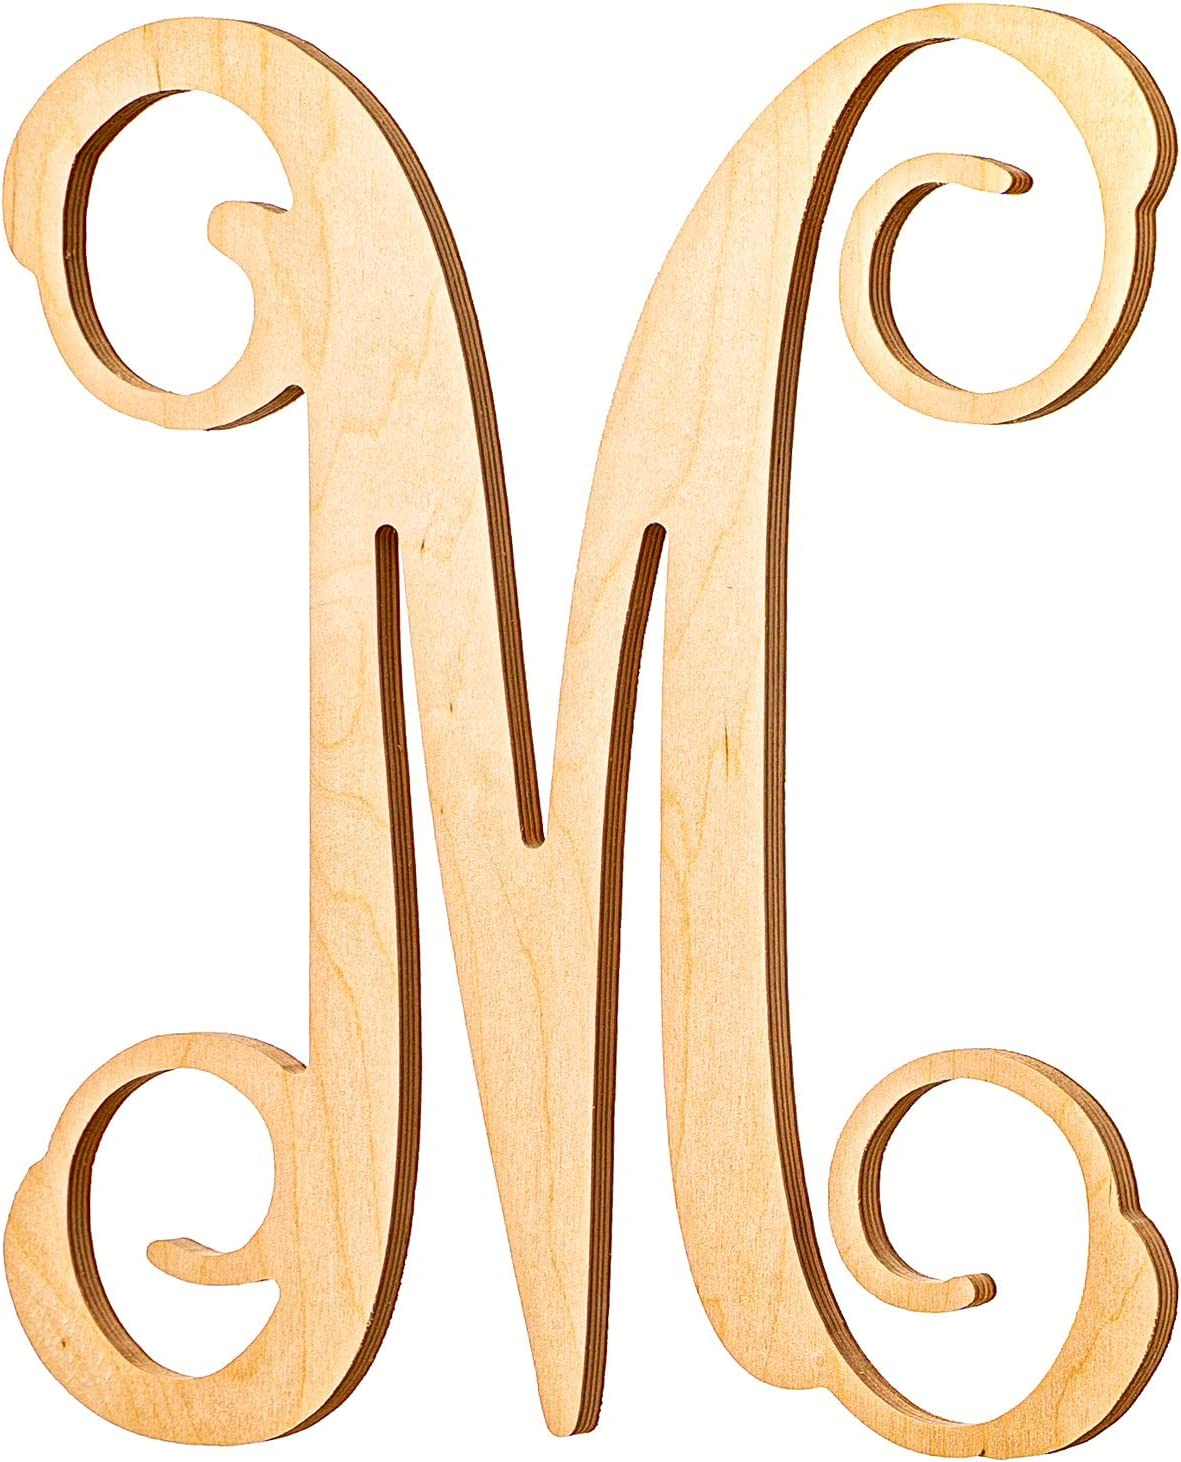 UNFINISHEDWOODCO Single Vine Monogram Unfinished Wood Letter, 19.5-Inch Tall, Initial for Wall Décor & Baby Door Hanger - Letter M